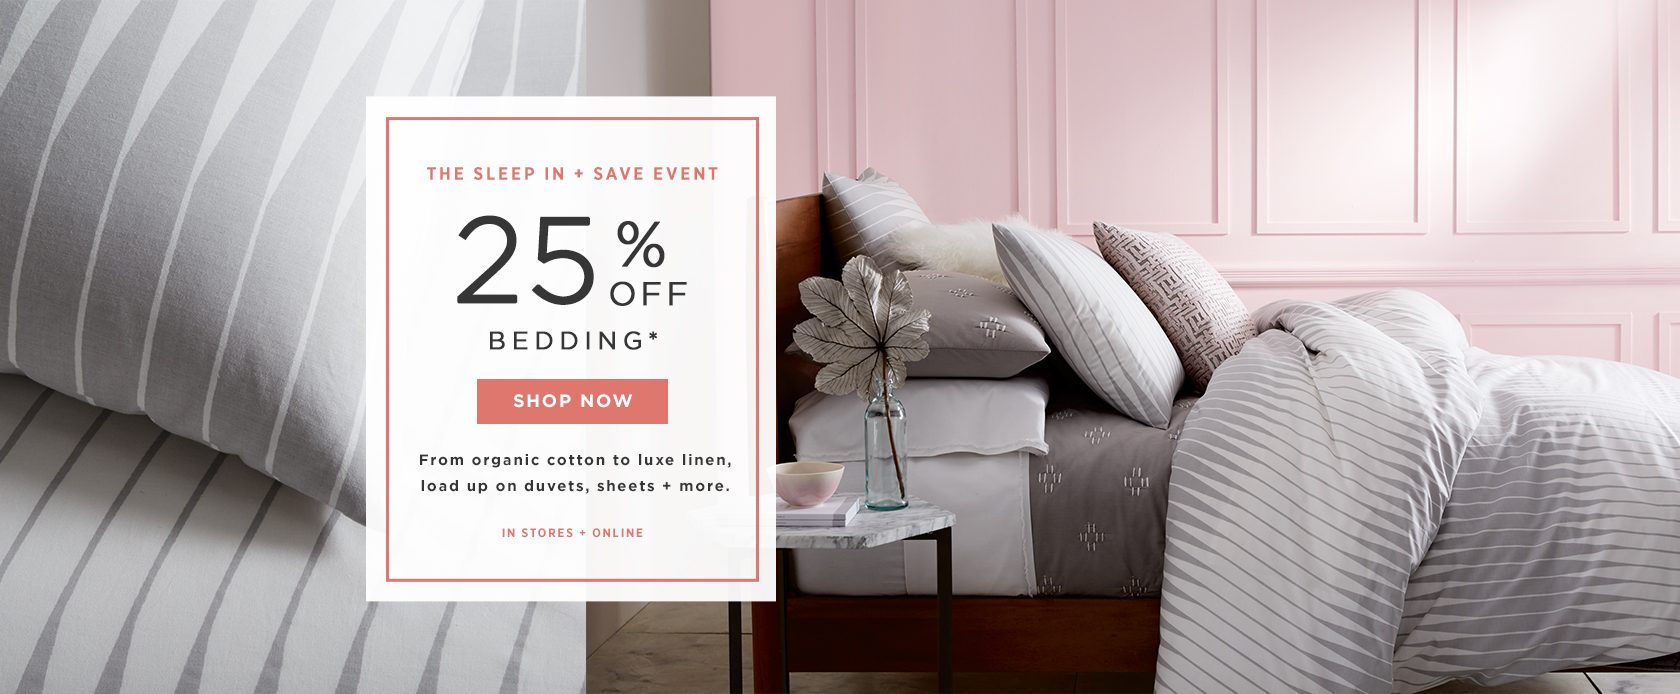 The Sleep In + Save Event: 25% Off Bedding